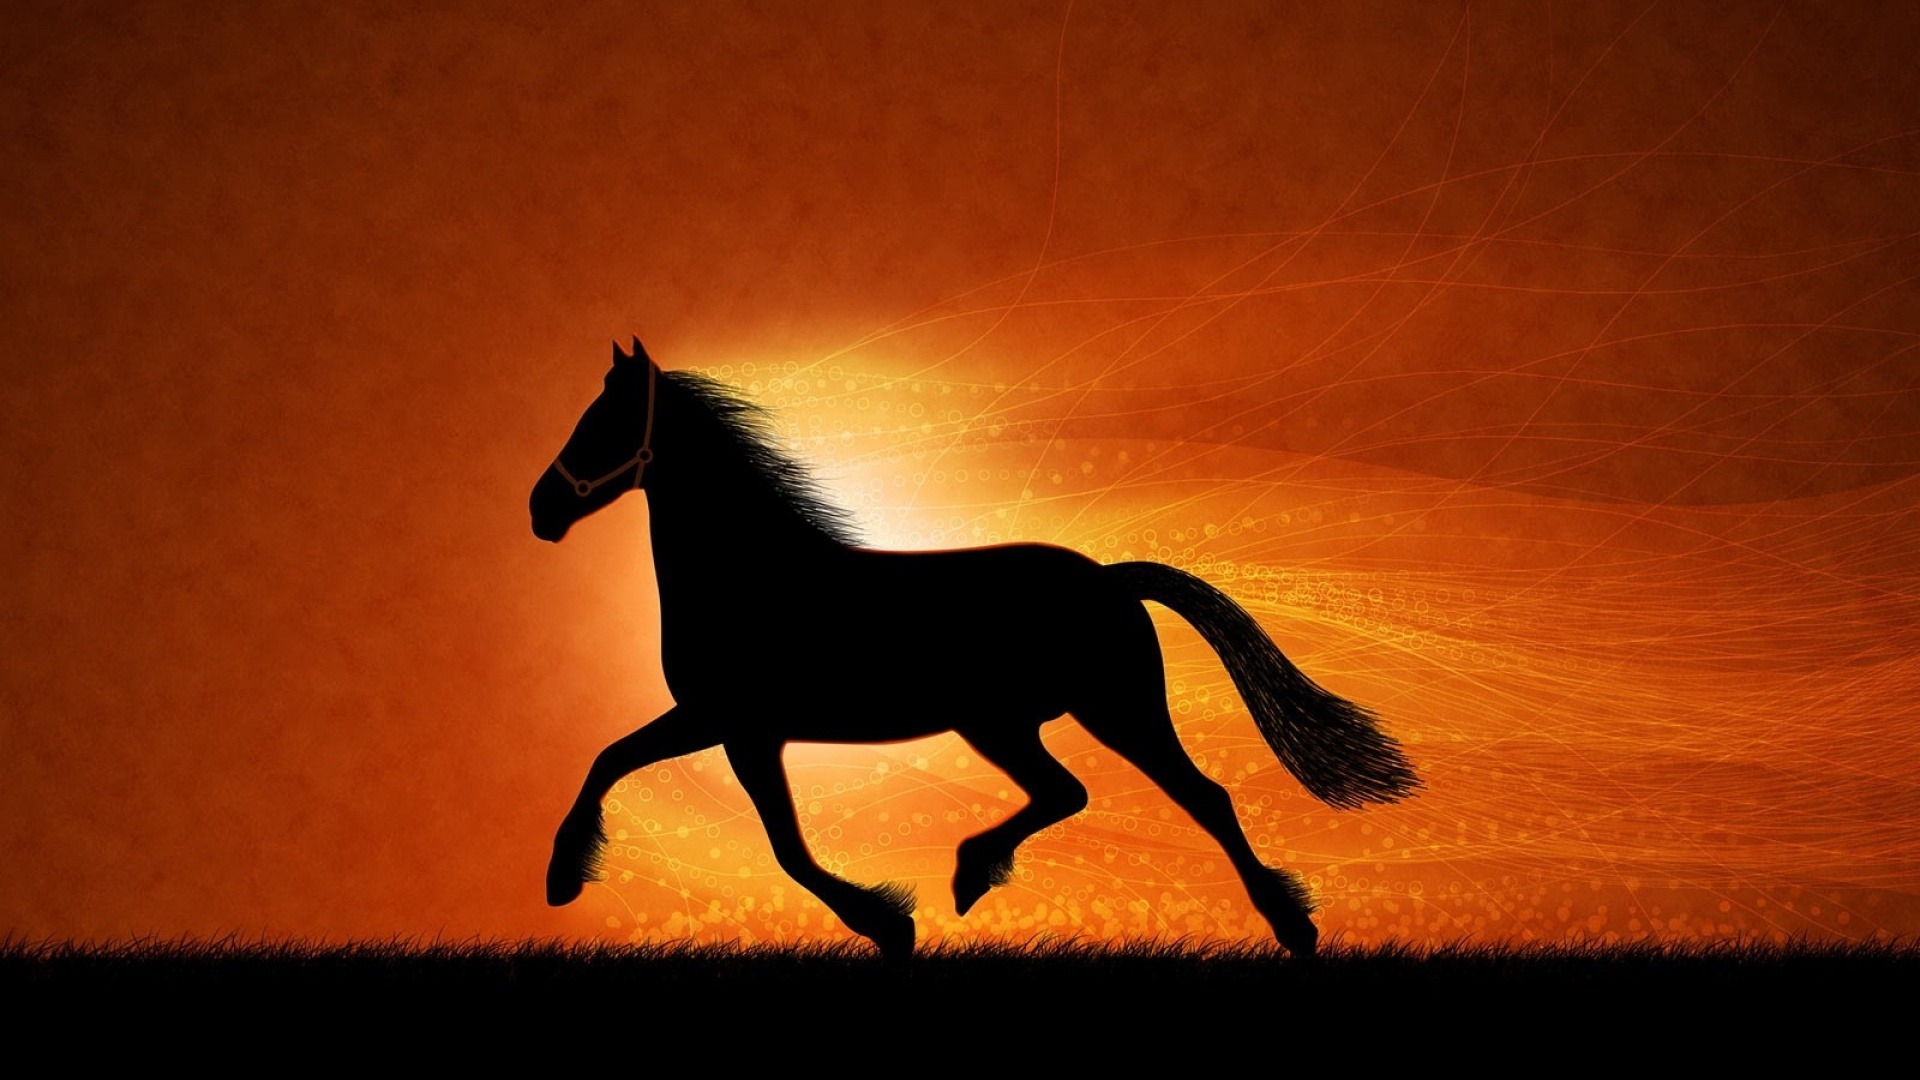 1920x1080 horse at sunset silhouette desktop pc and mac